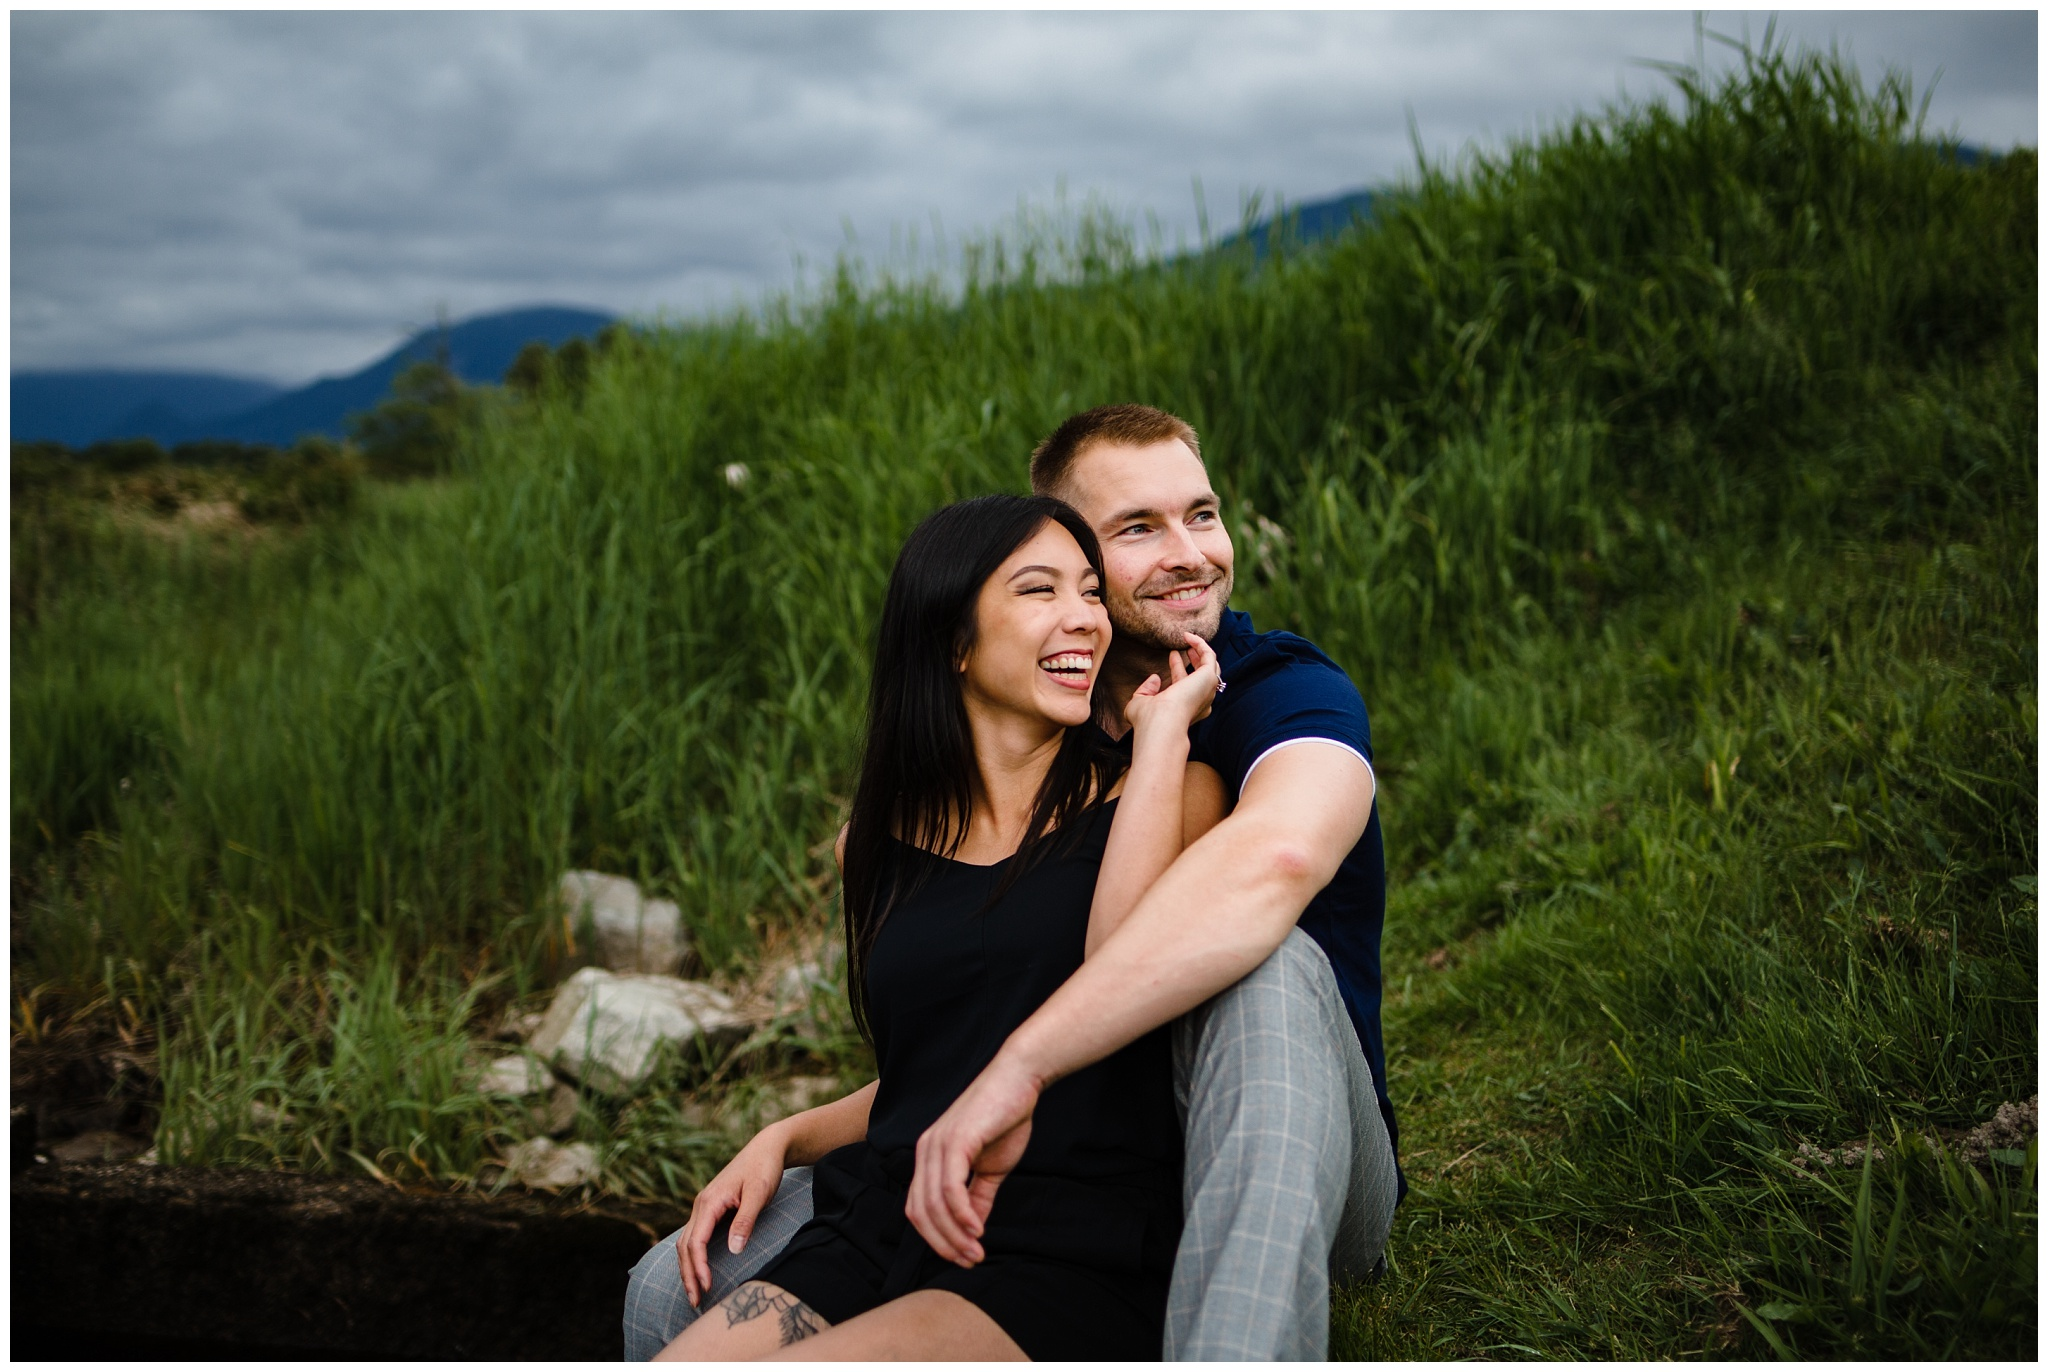 Pitt Lake Engagement Photos Maple Ridge Candid Fun Romantic Couples Photography_0012.jpg